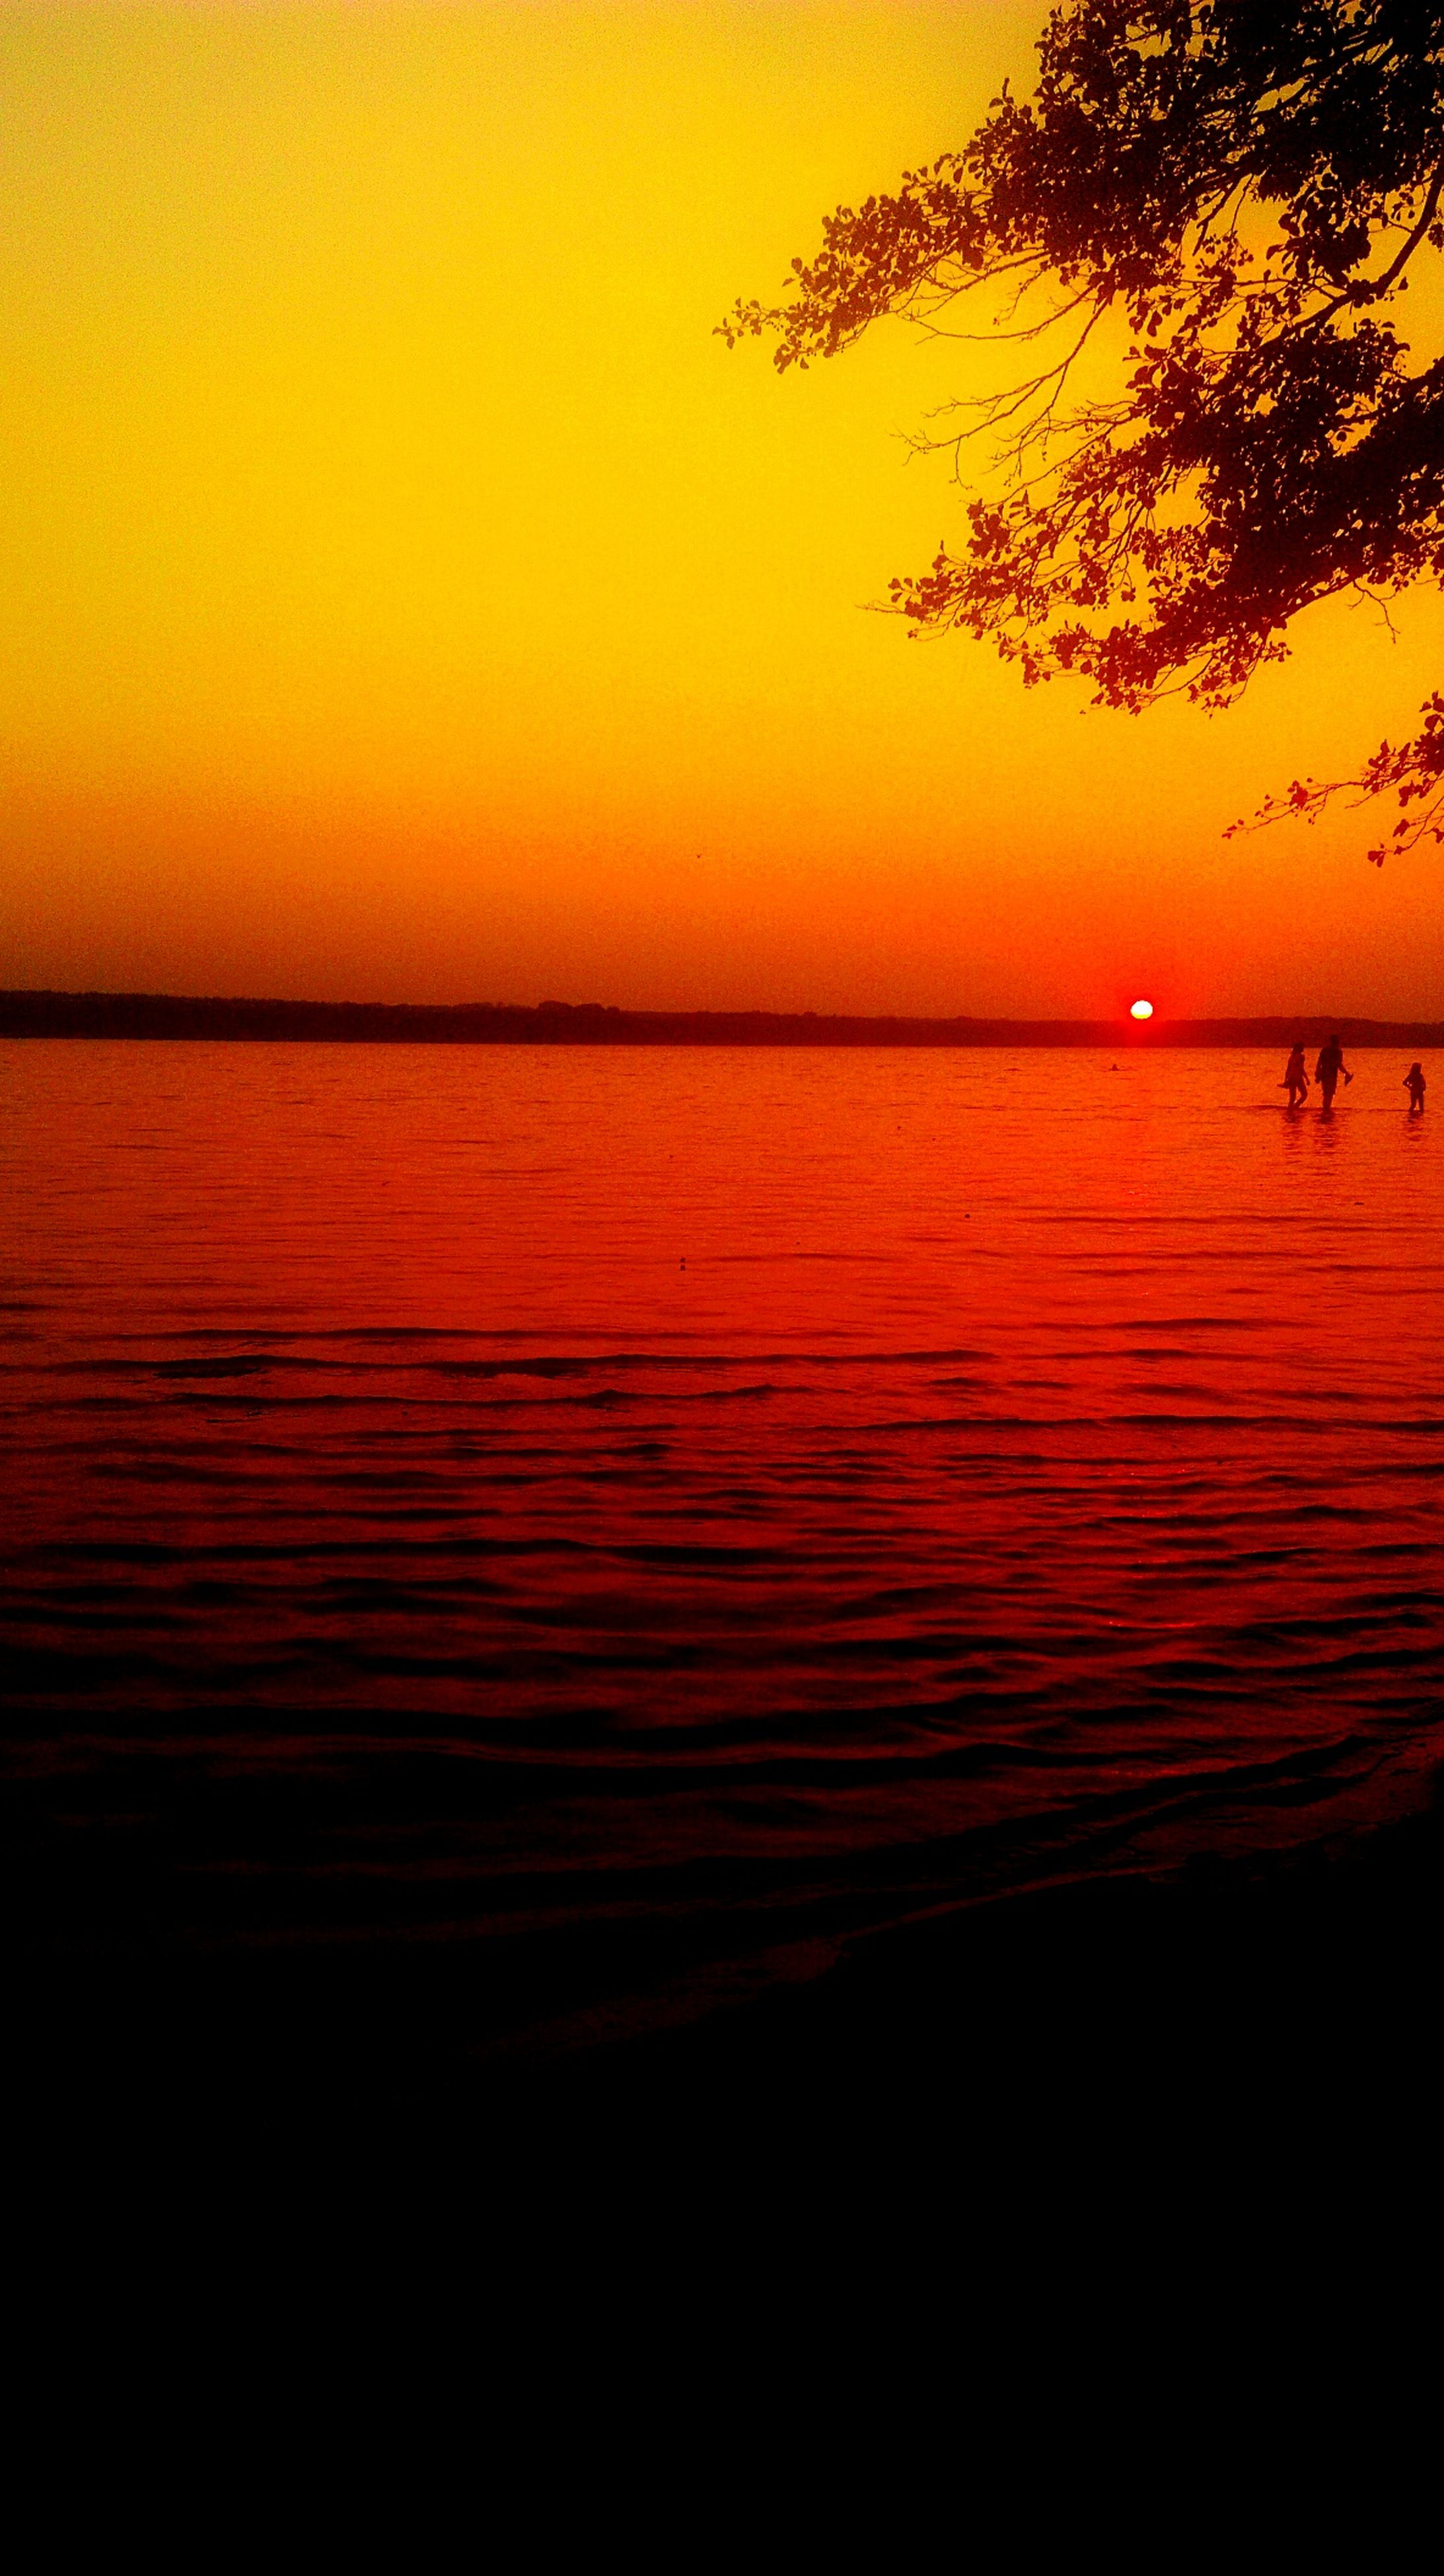 sunset, water, scenics, tranquil scene, tranquility, sea, beauty in nature, tree, silhouette, orange color, idyllic, horizon over water, majestic, vibrant color, sun, nature, calm, atmosphere, dramatic sky, remote, atmospheric mood, sky, romantic sky, outdoors, seascape, no people, shore, ocean, non-urban scene, red